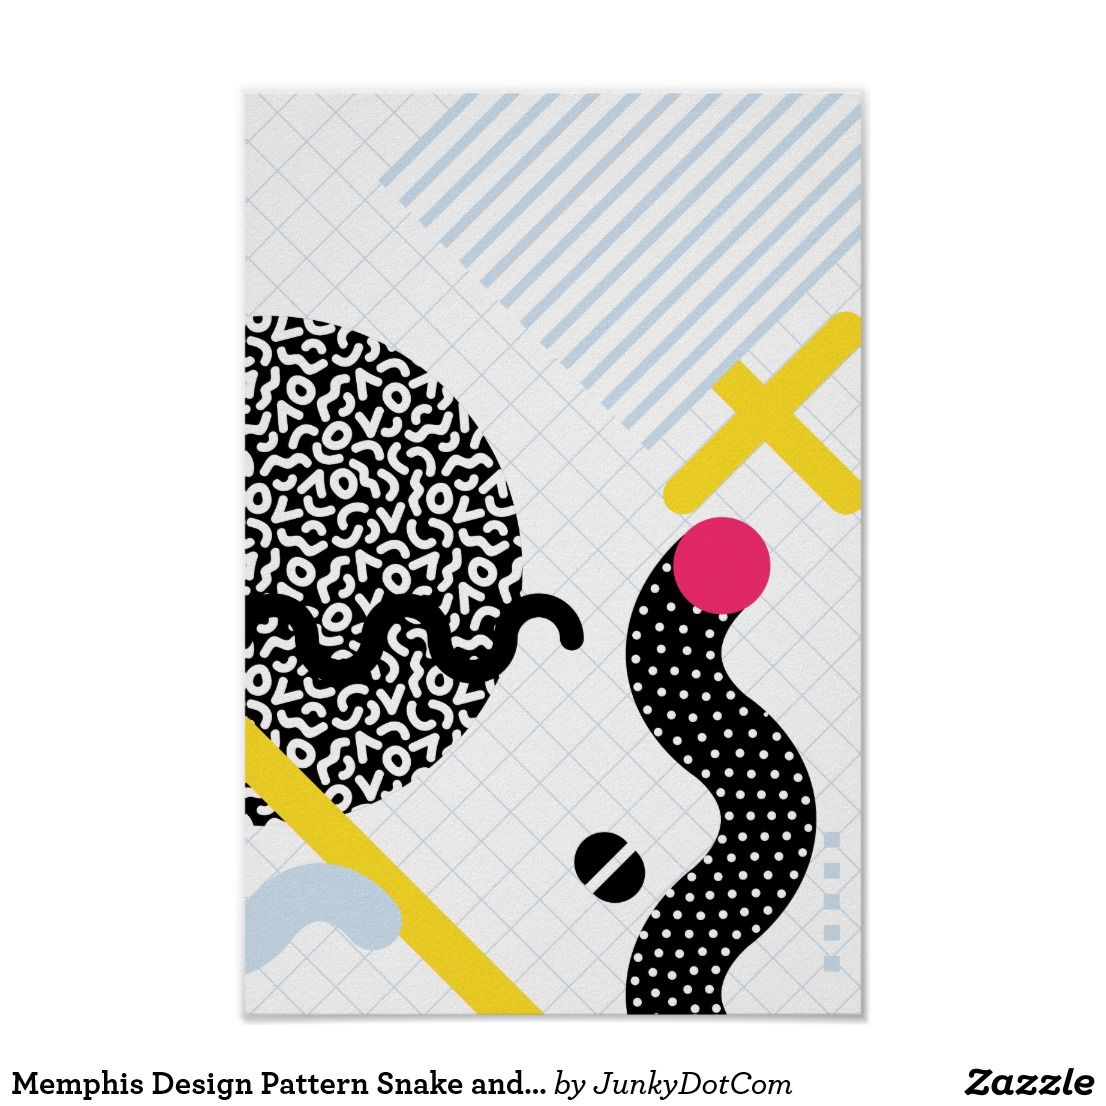 Zazzle poster design - Memphis Design Pattern Snake And Worms Poster June 16 2017 Zazzle Junkydotcom Summer